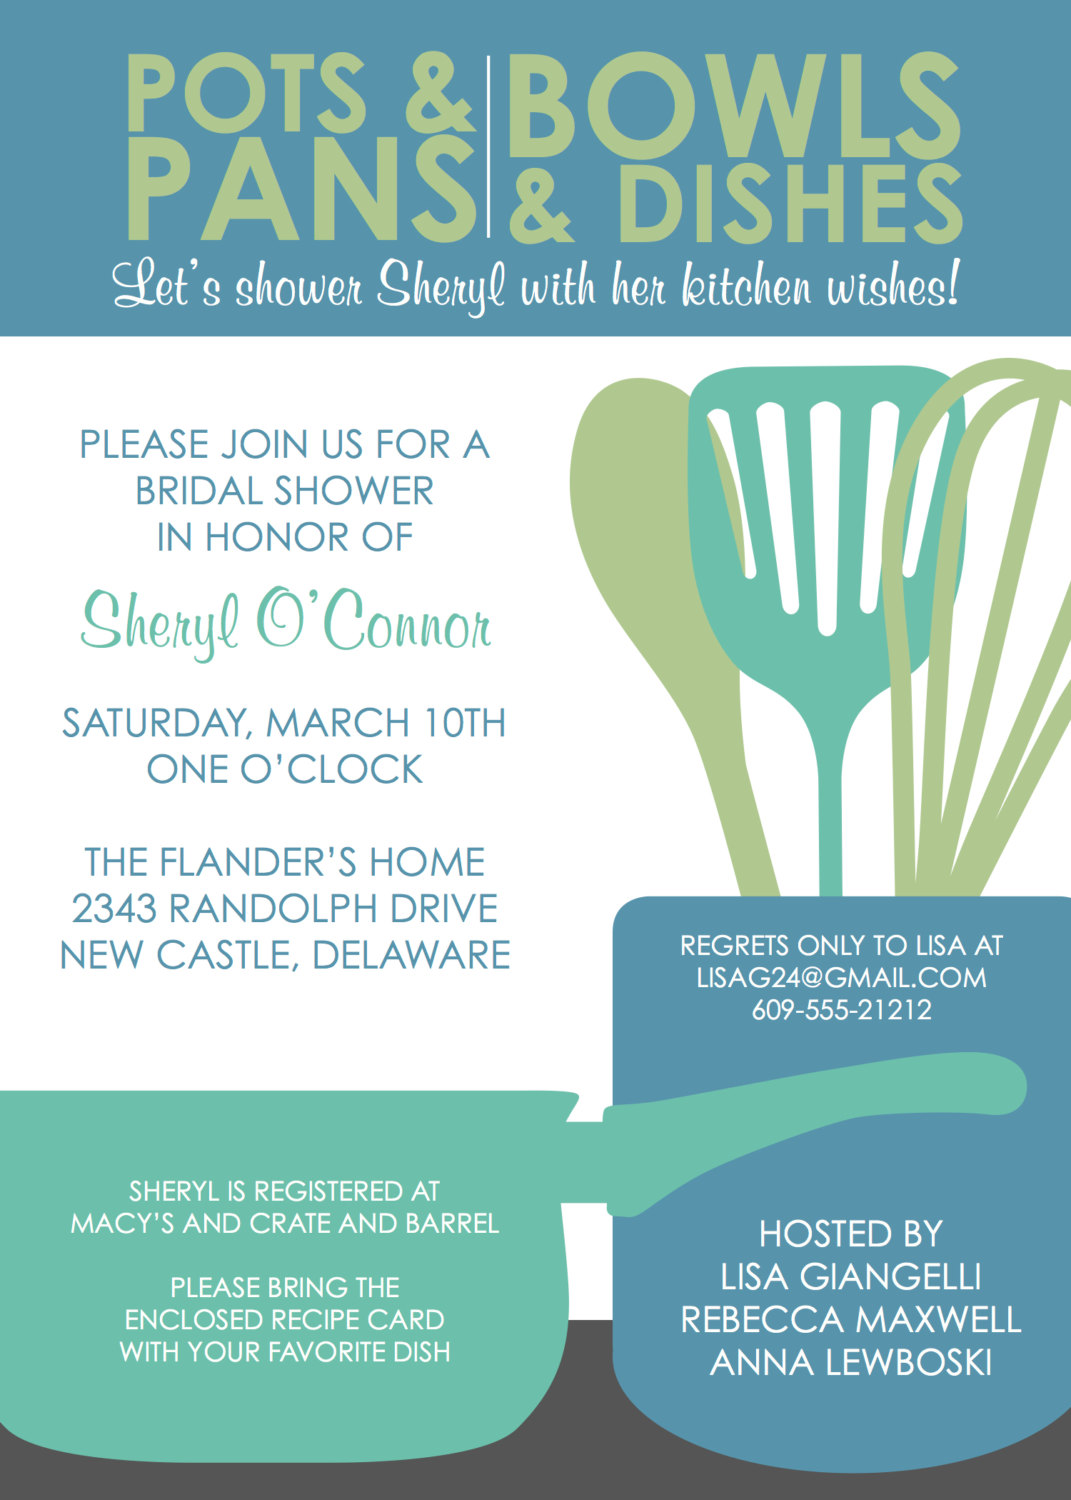 Bridal Shower Invitations Templates Free Download Il_fullxfull .